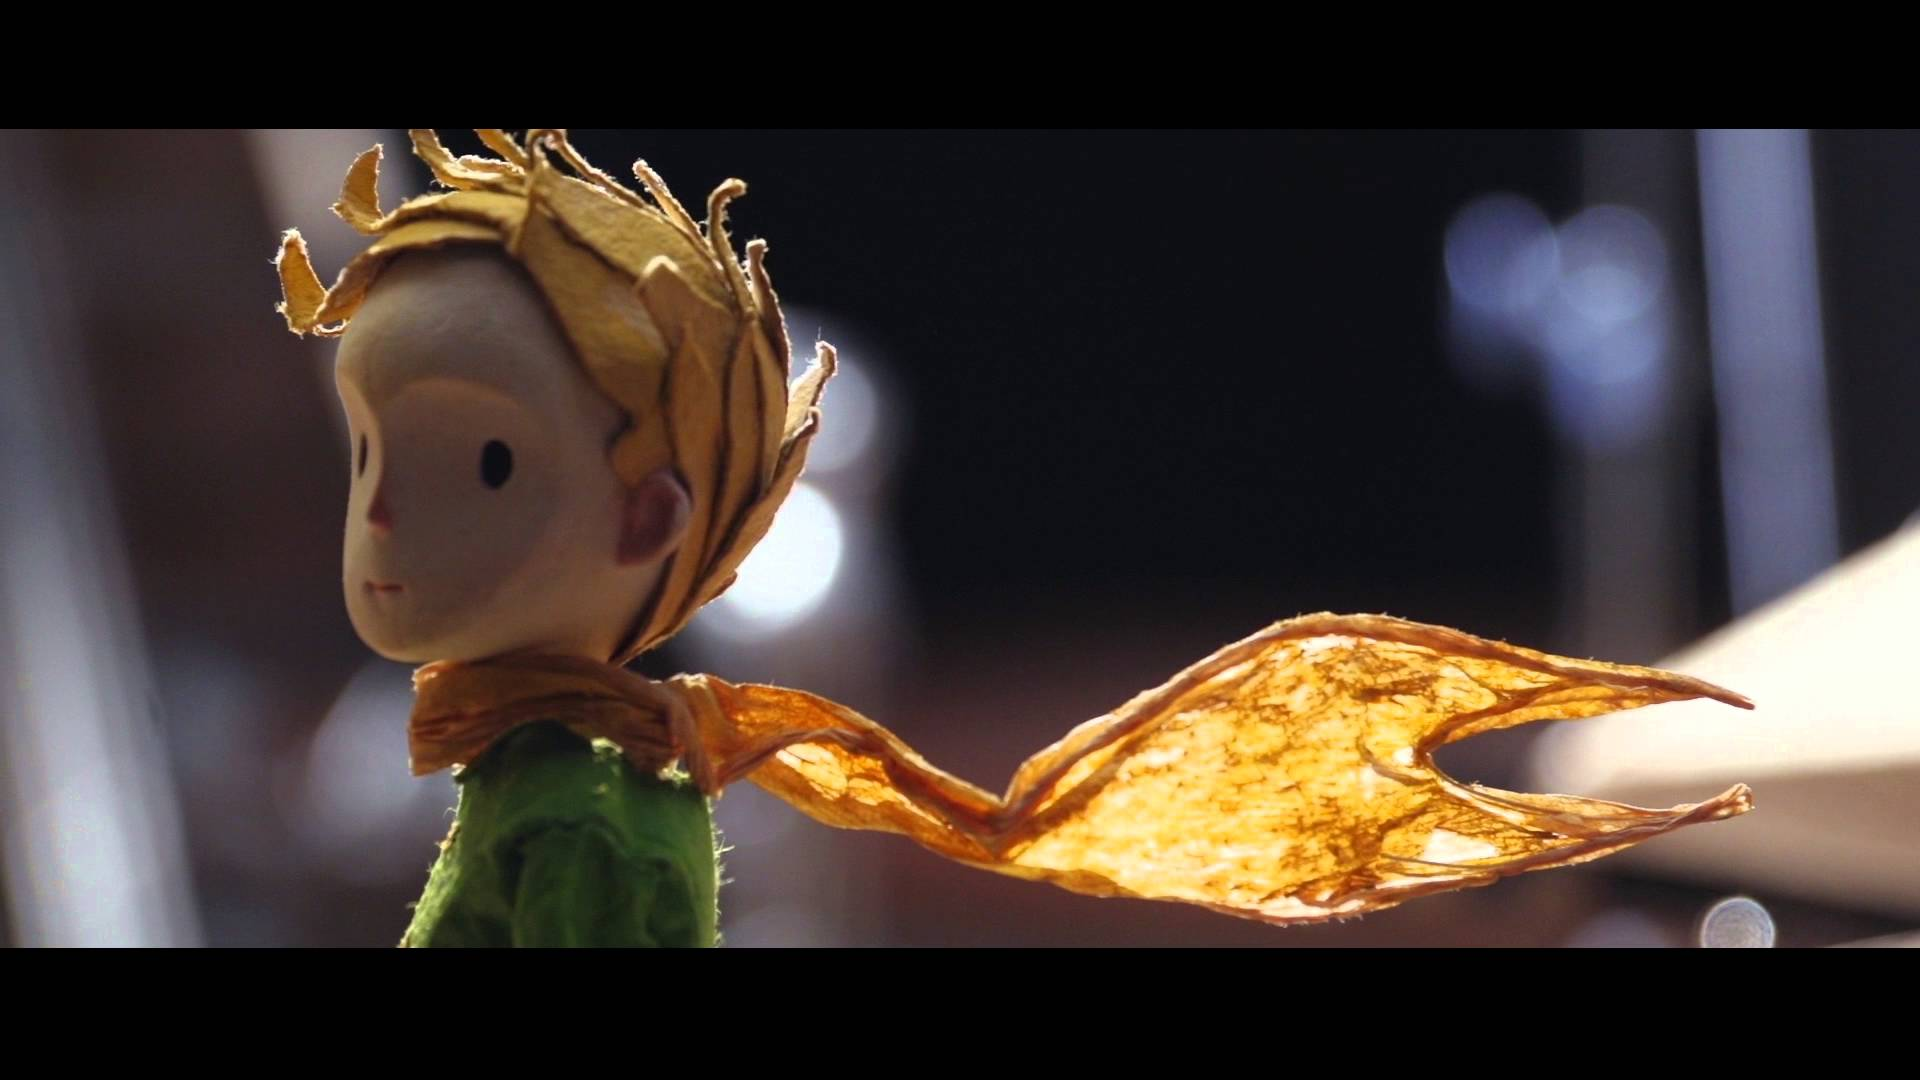 The Little Prince Stop Motion Animation Behind The Scenes